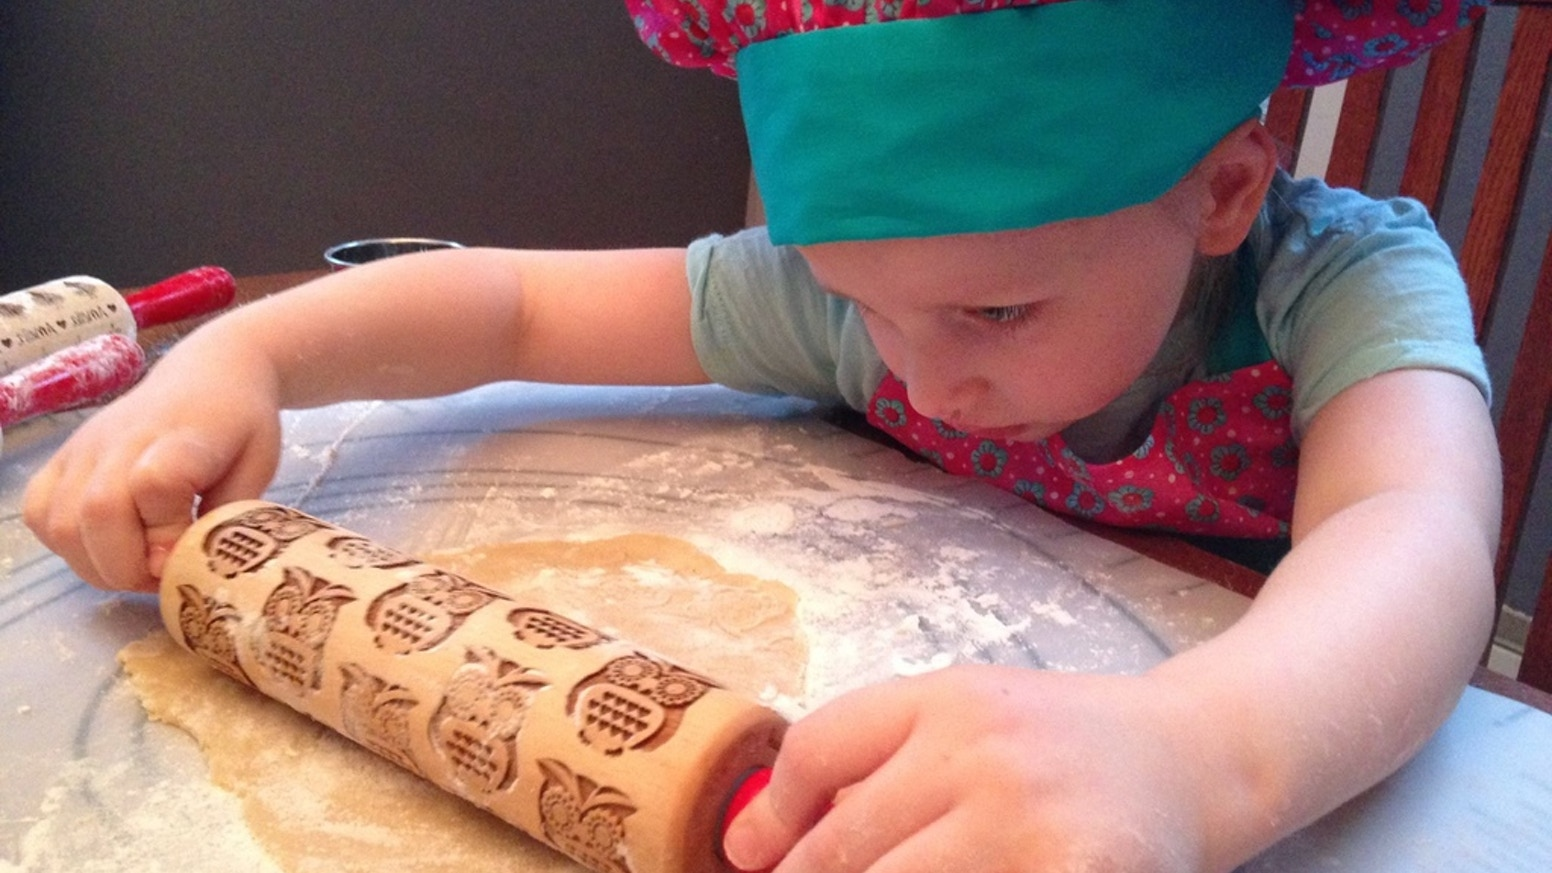 Little chefs will stay busy for hours playing and baking with patterned rolling pins just their size. Now lets bake and eat cookies!